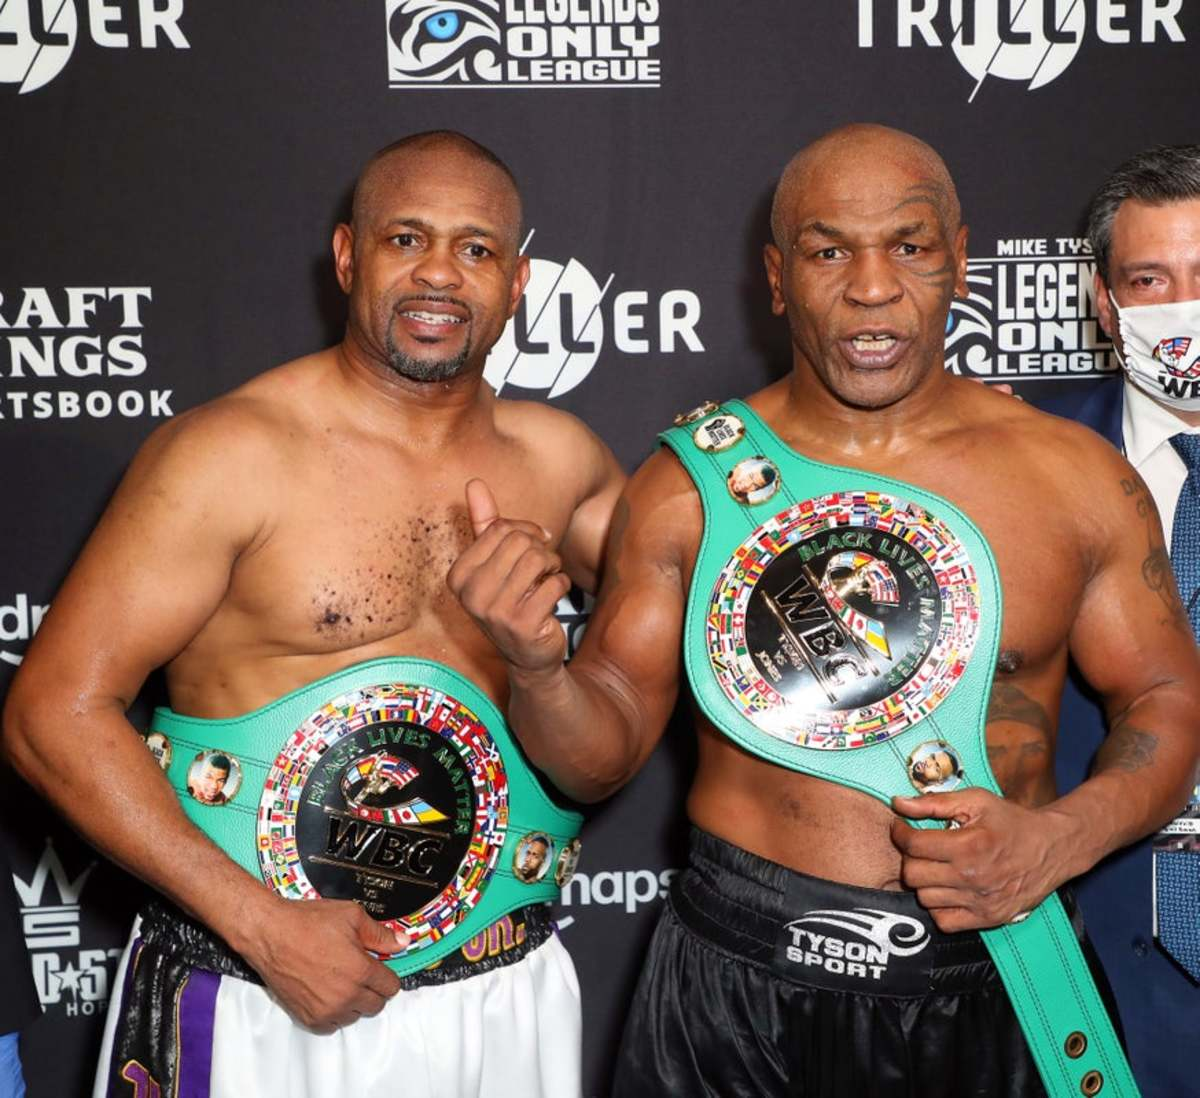 Mike Tyson vs. Roy Jones: Results, highlights, analysis - Sports Illustrated